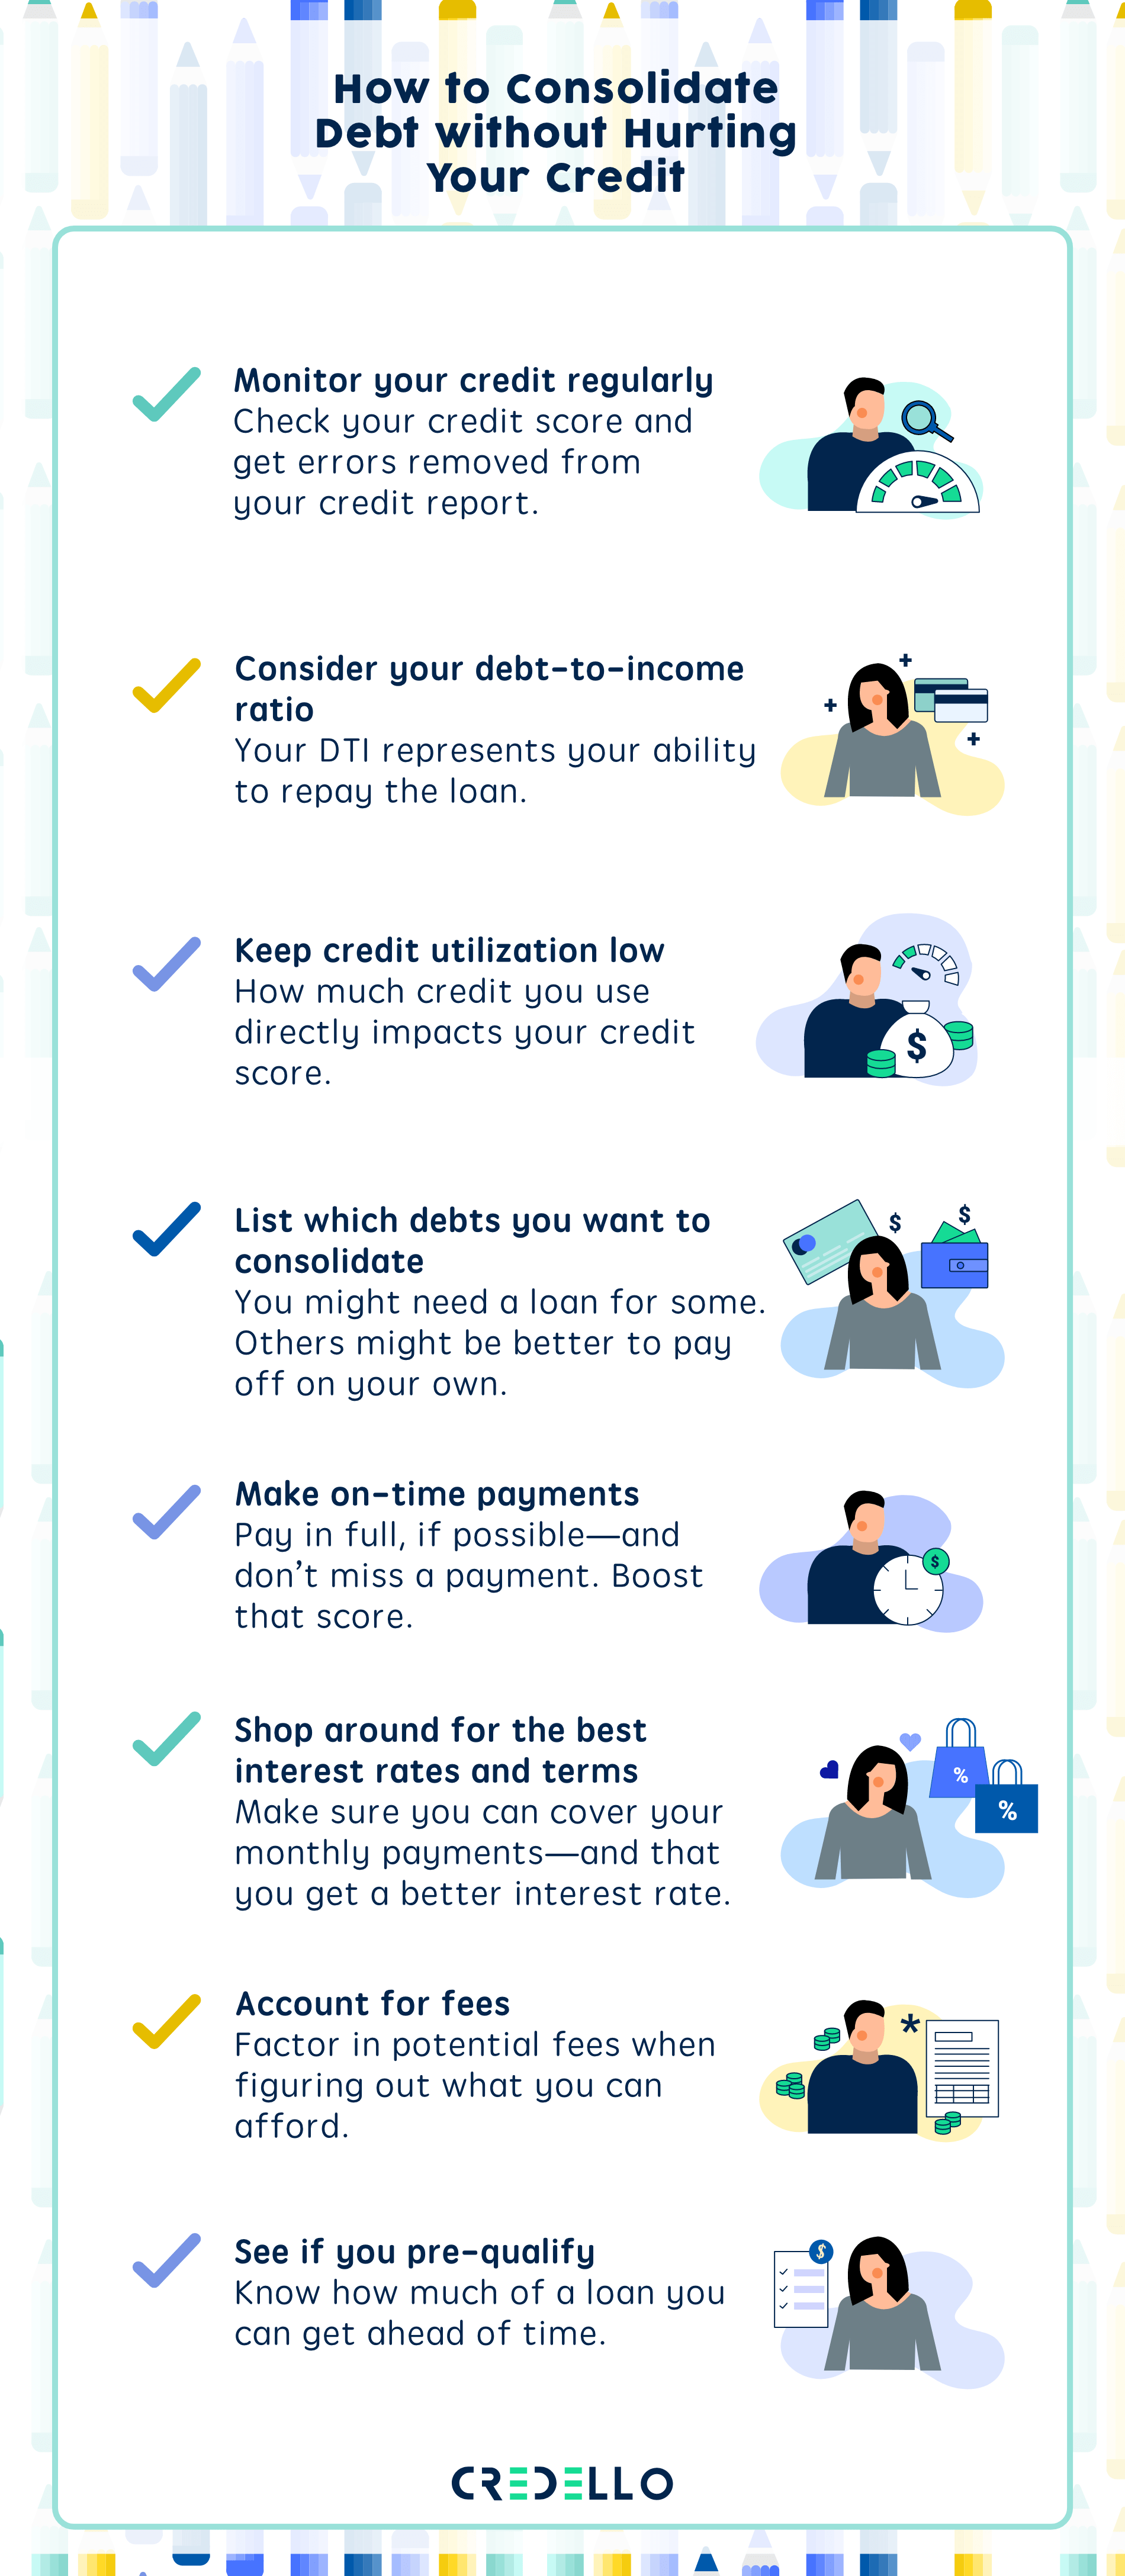 how to consolidate debt without hurting your credit